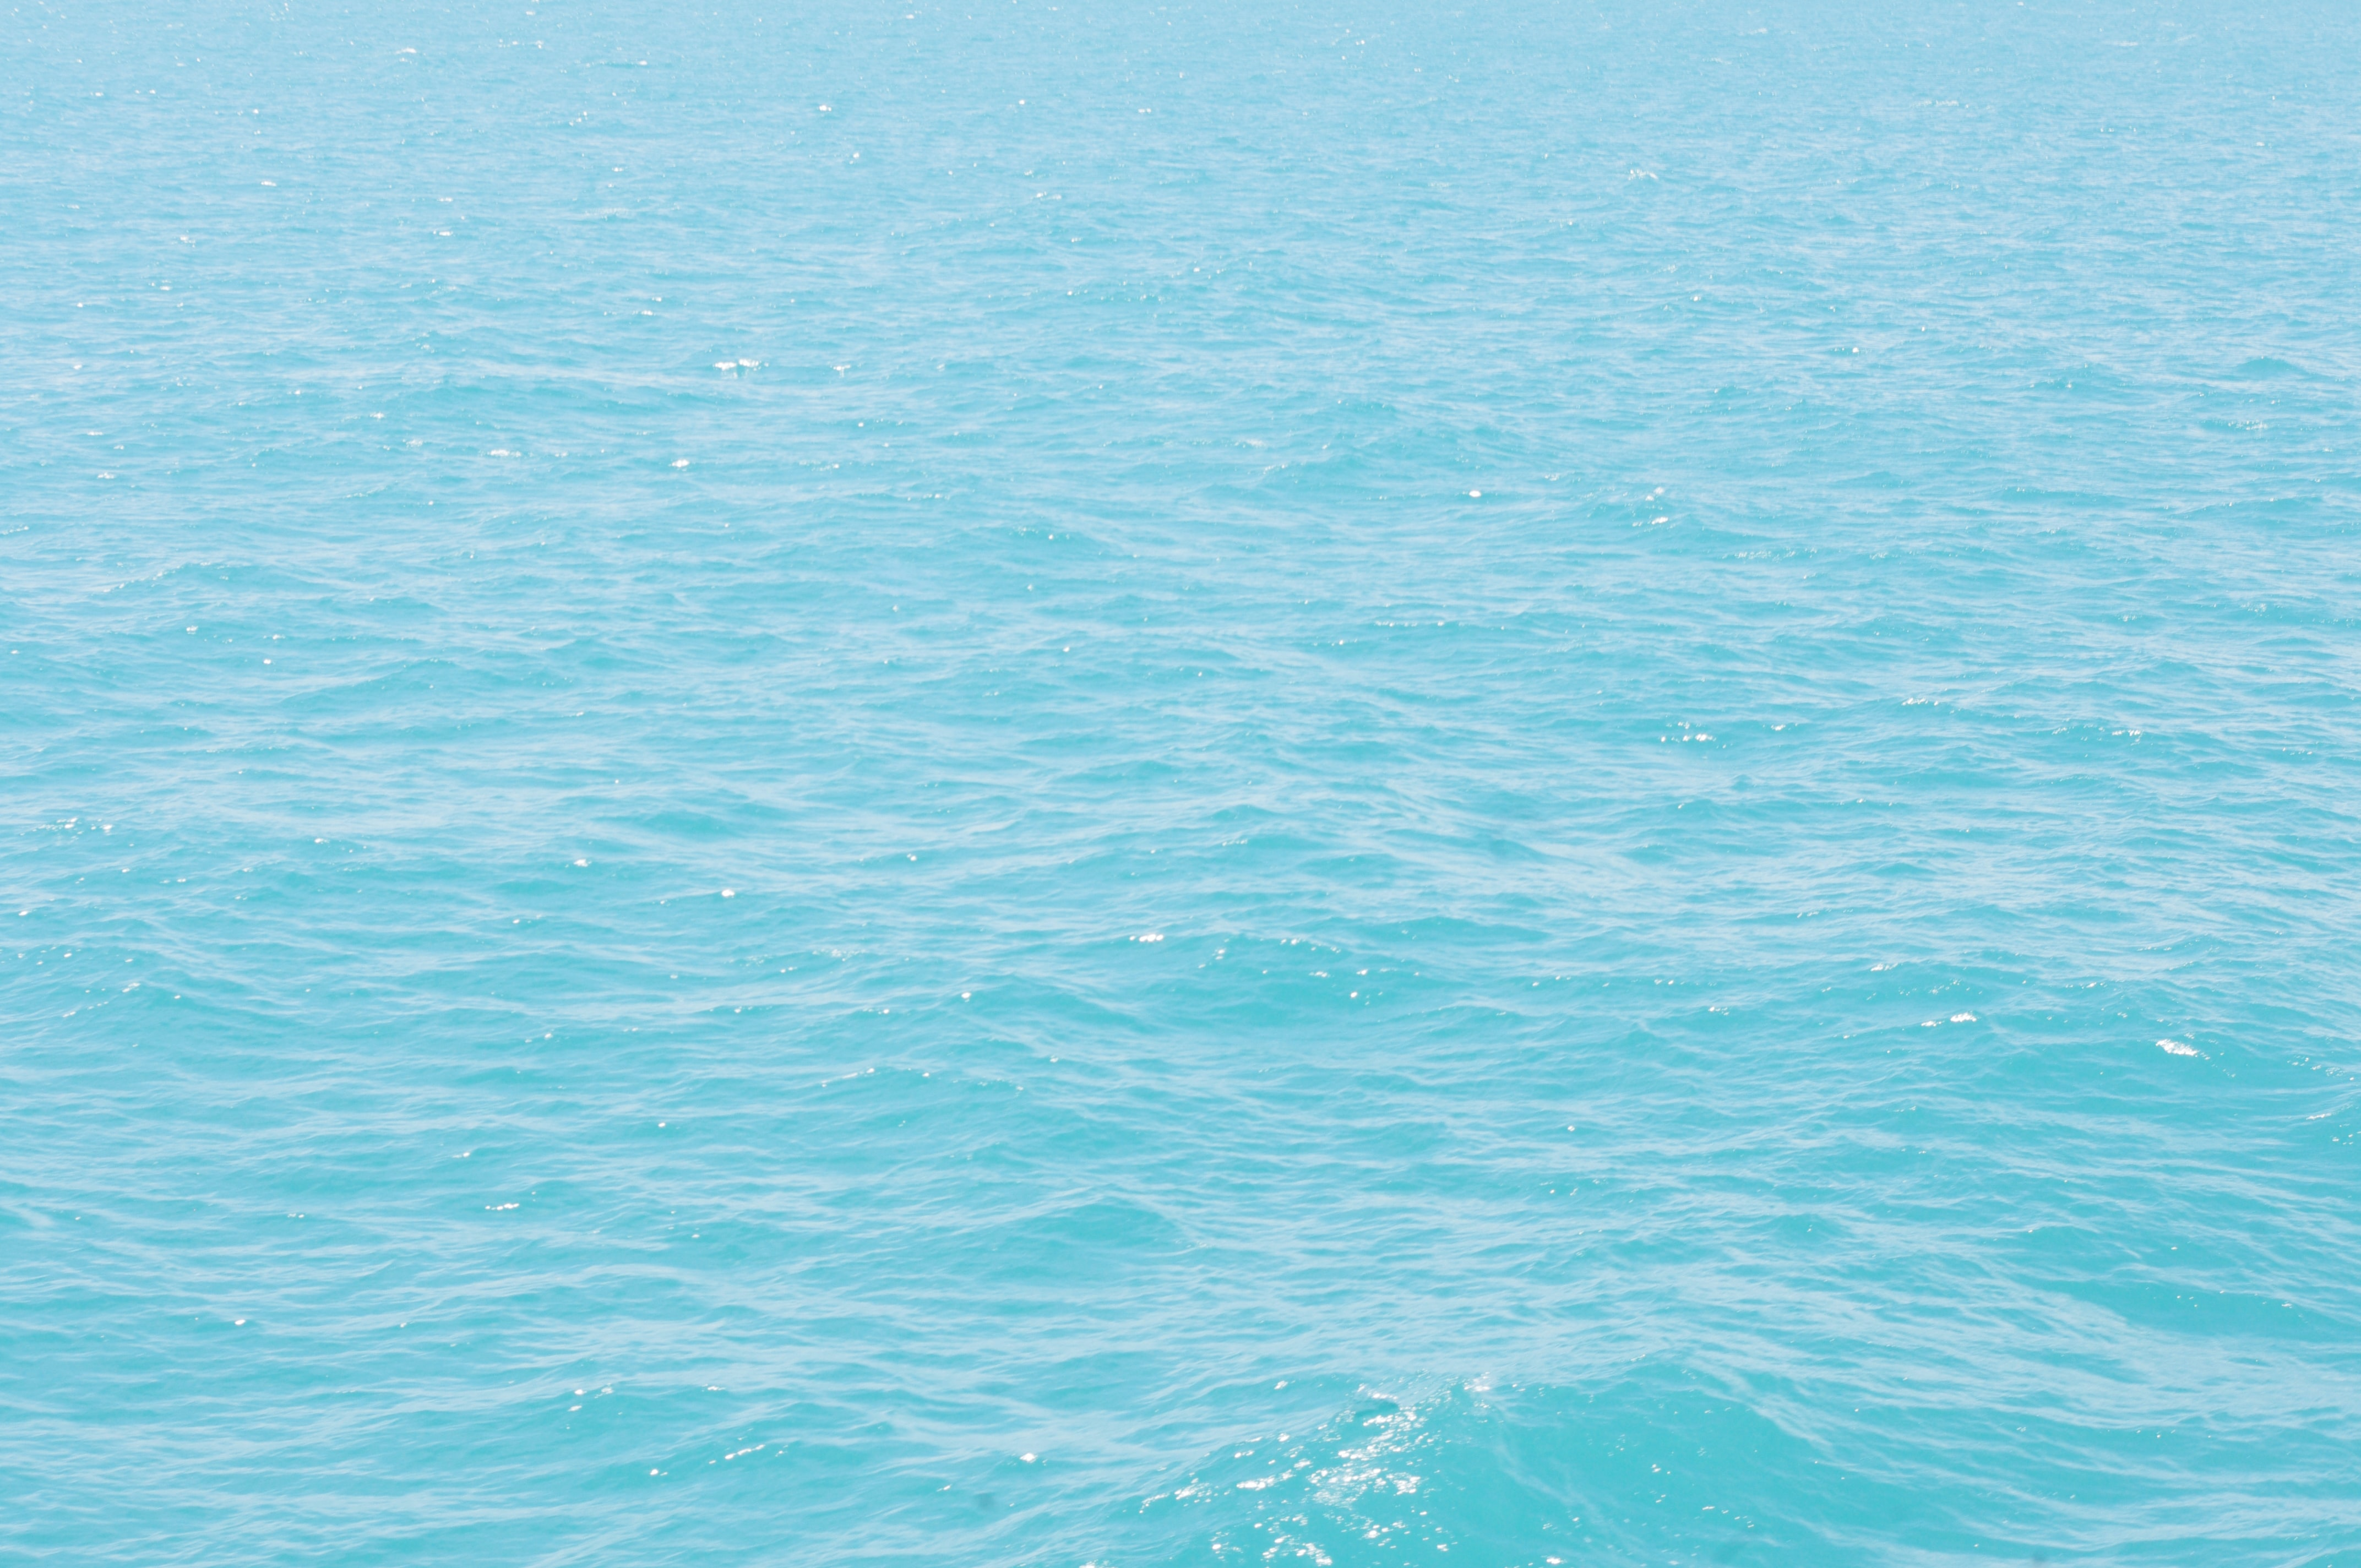 photograph of calm body of water